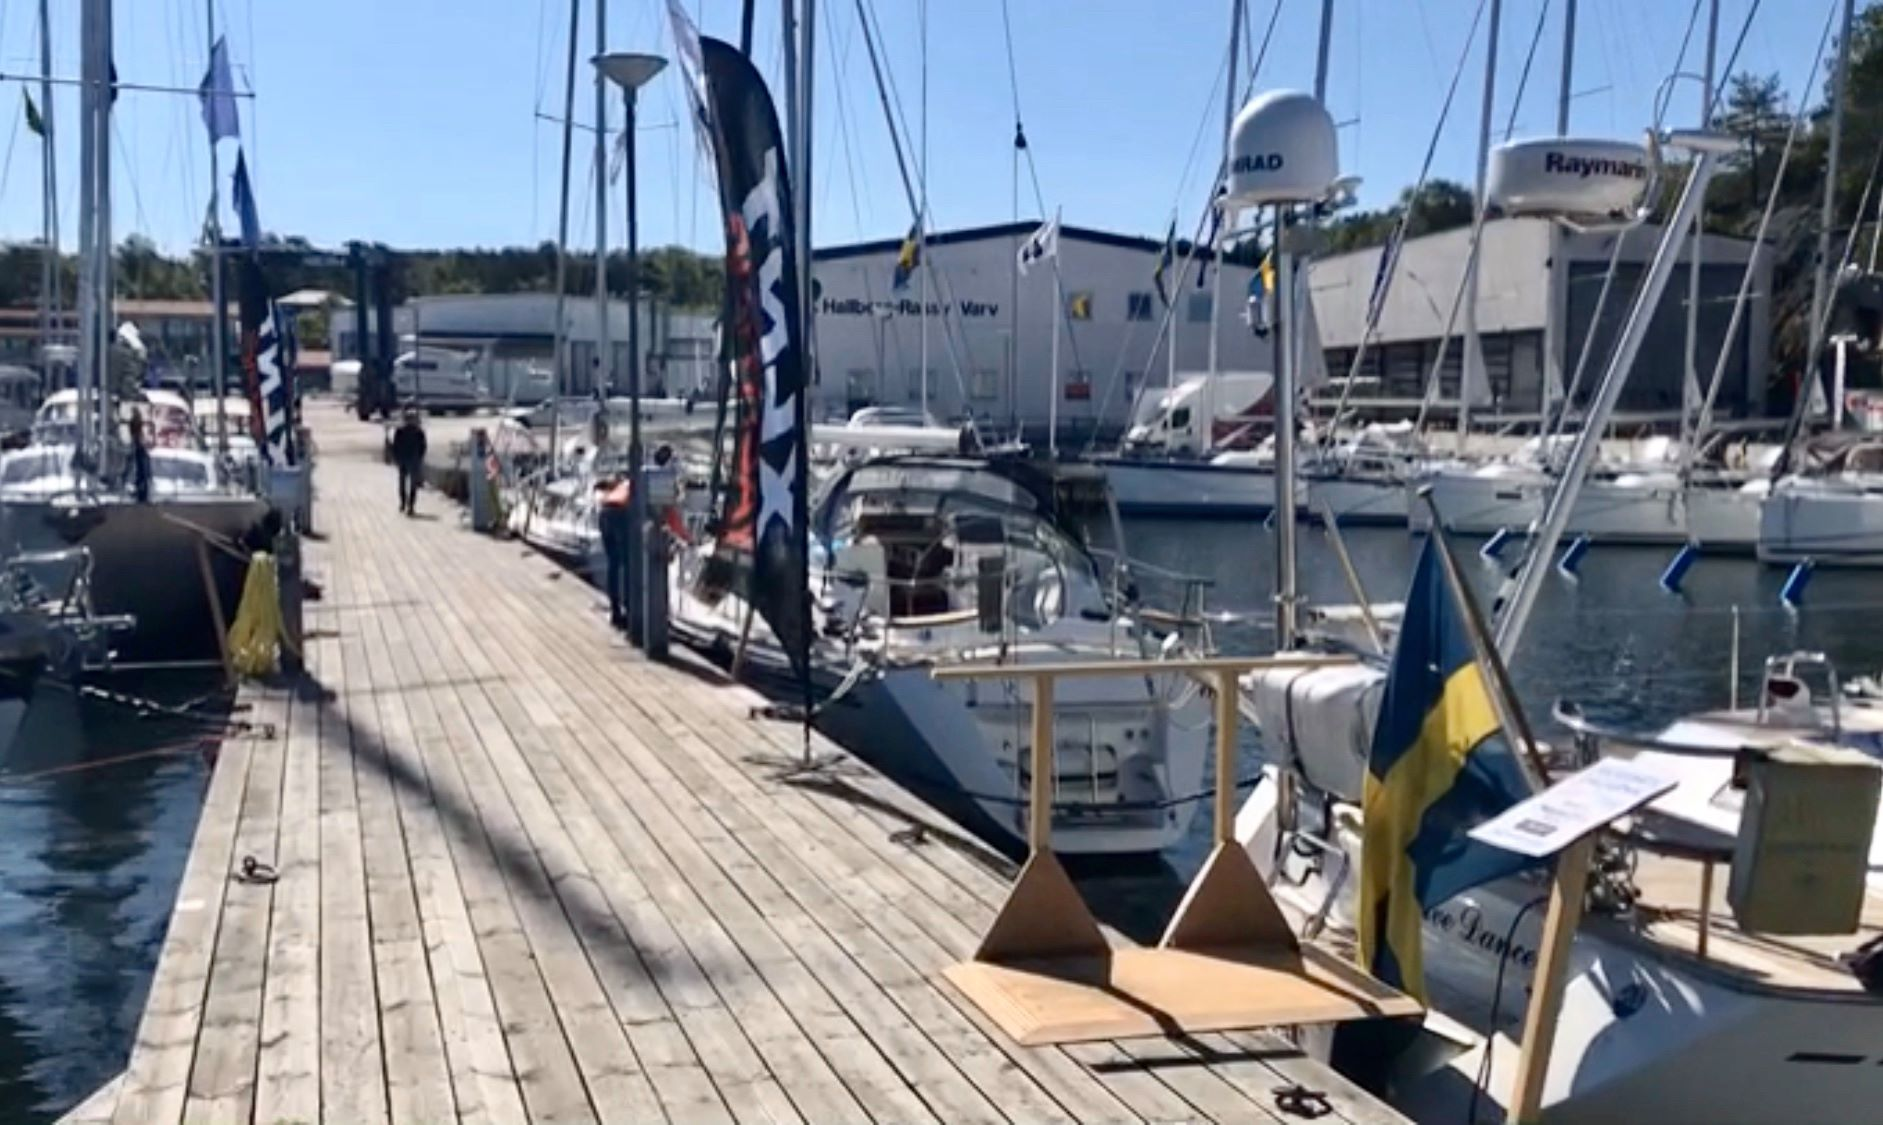 See the 340, 40C, 44 and 57 at open weekend in Ellös 9-10 May 2020